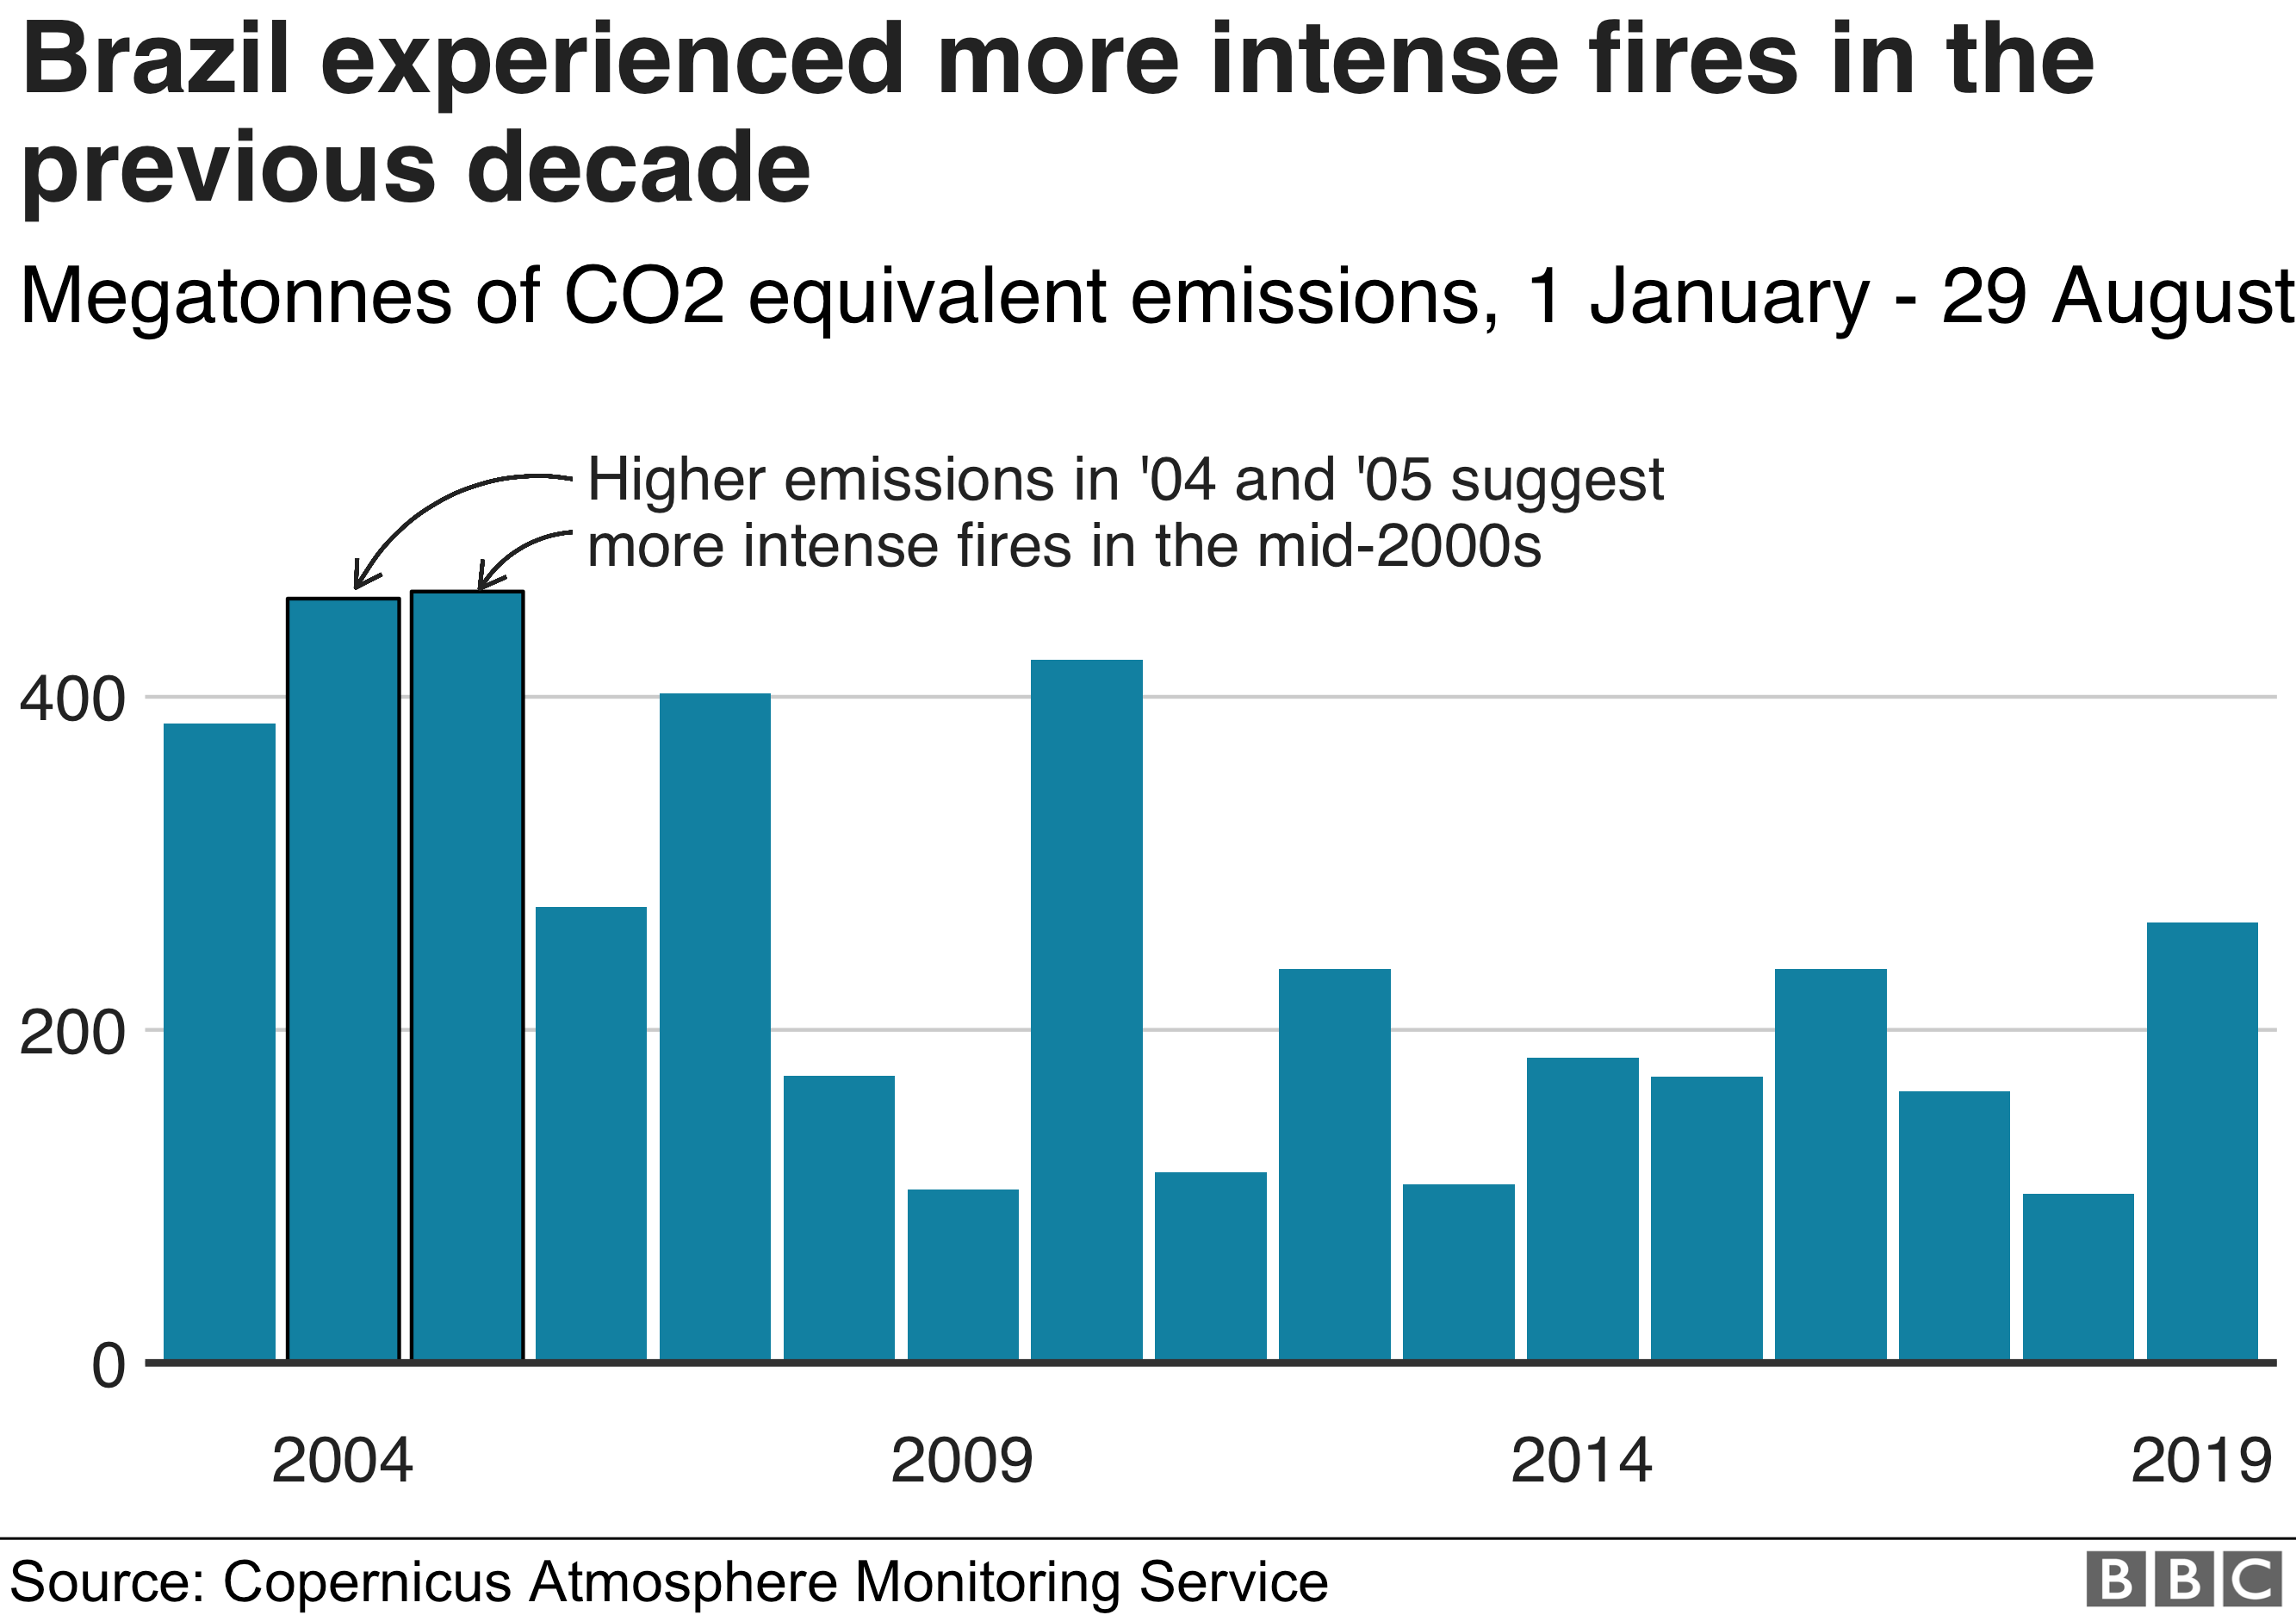 Chart showing the total CO2 equivalent emissions year on year in Brazil, showing how Brazil experienced more intense fires in the mid-2000s